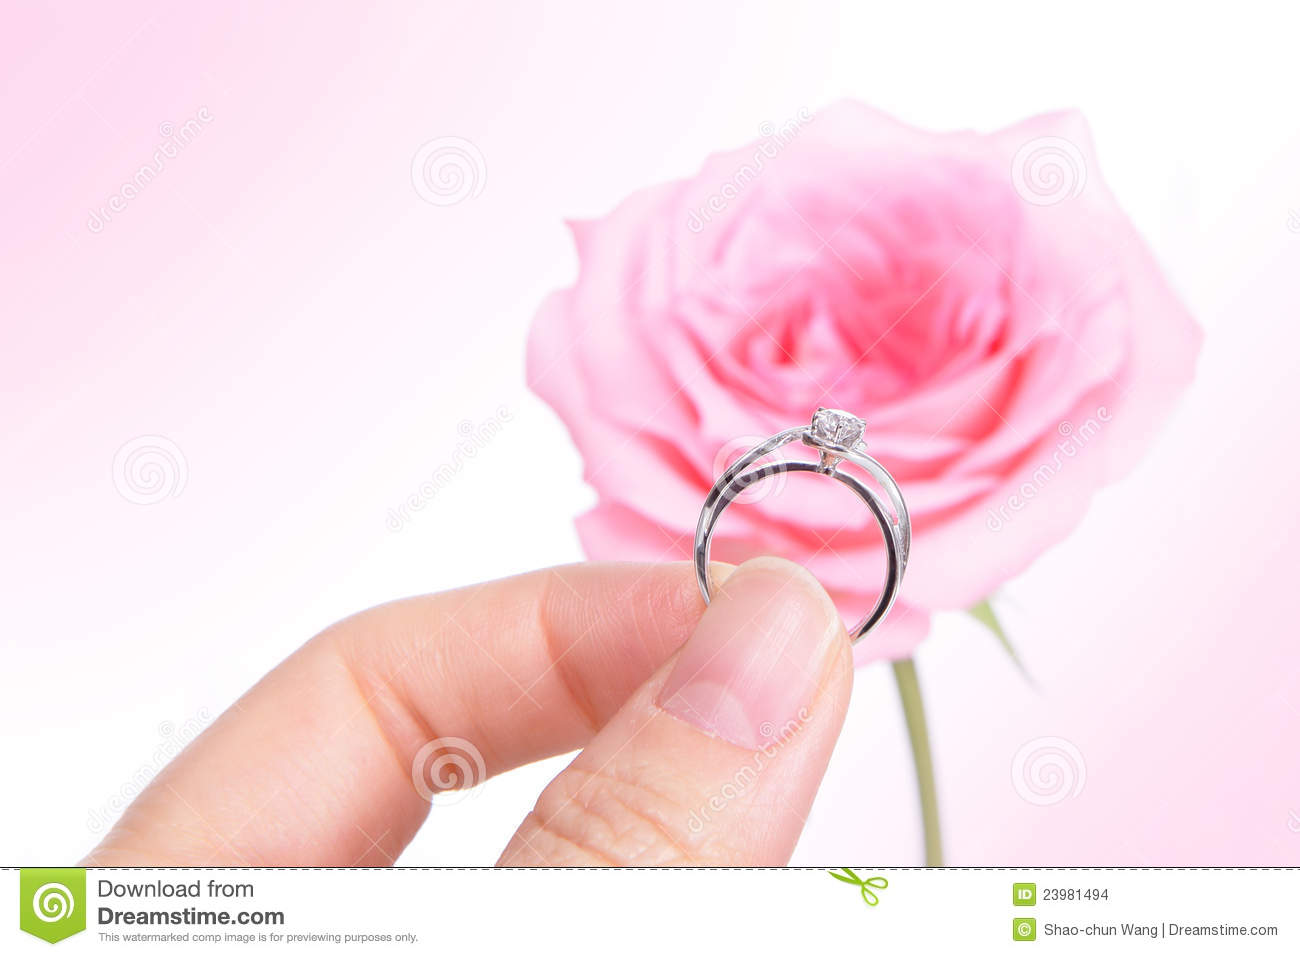 Hand Holding Romantic Diamond Wedding Ring Stock Photo - Image of ...